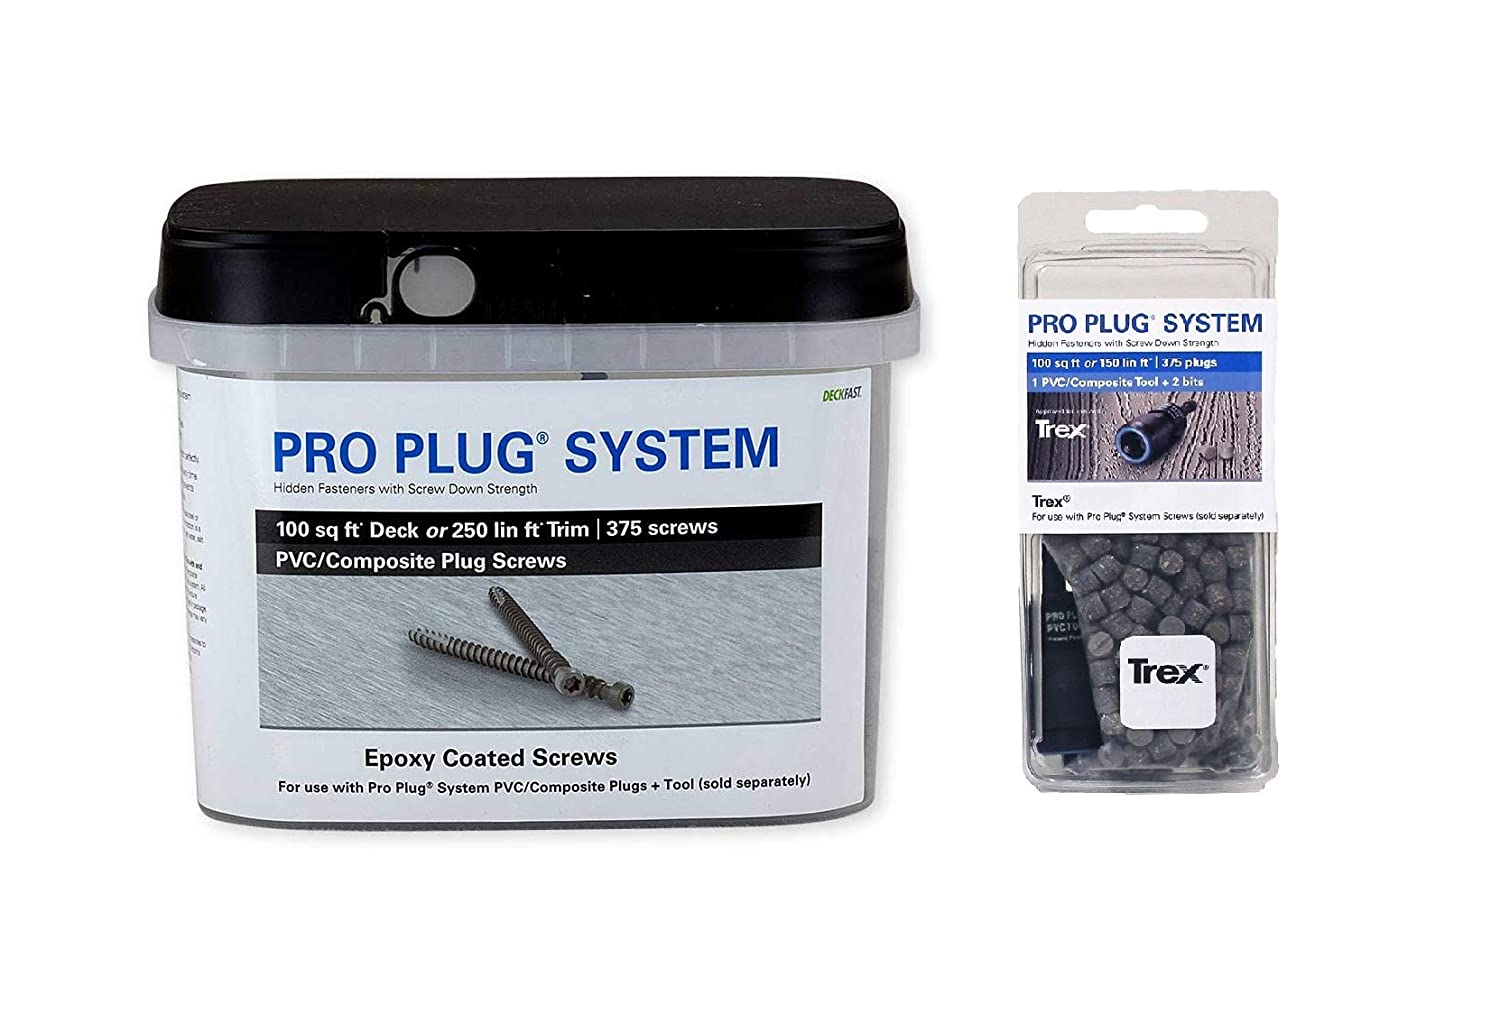 Combo Kit 375 Plugs and 375 Epoxy Screws and PVC Tool for 100 sq ft Pro Plug System for Trex Transcend Tiki Torch Decking